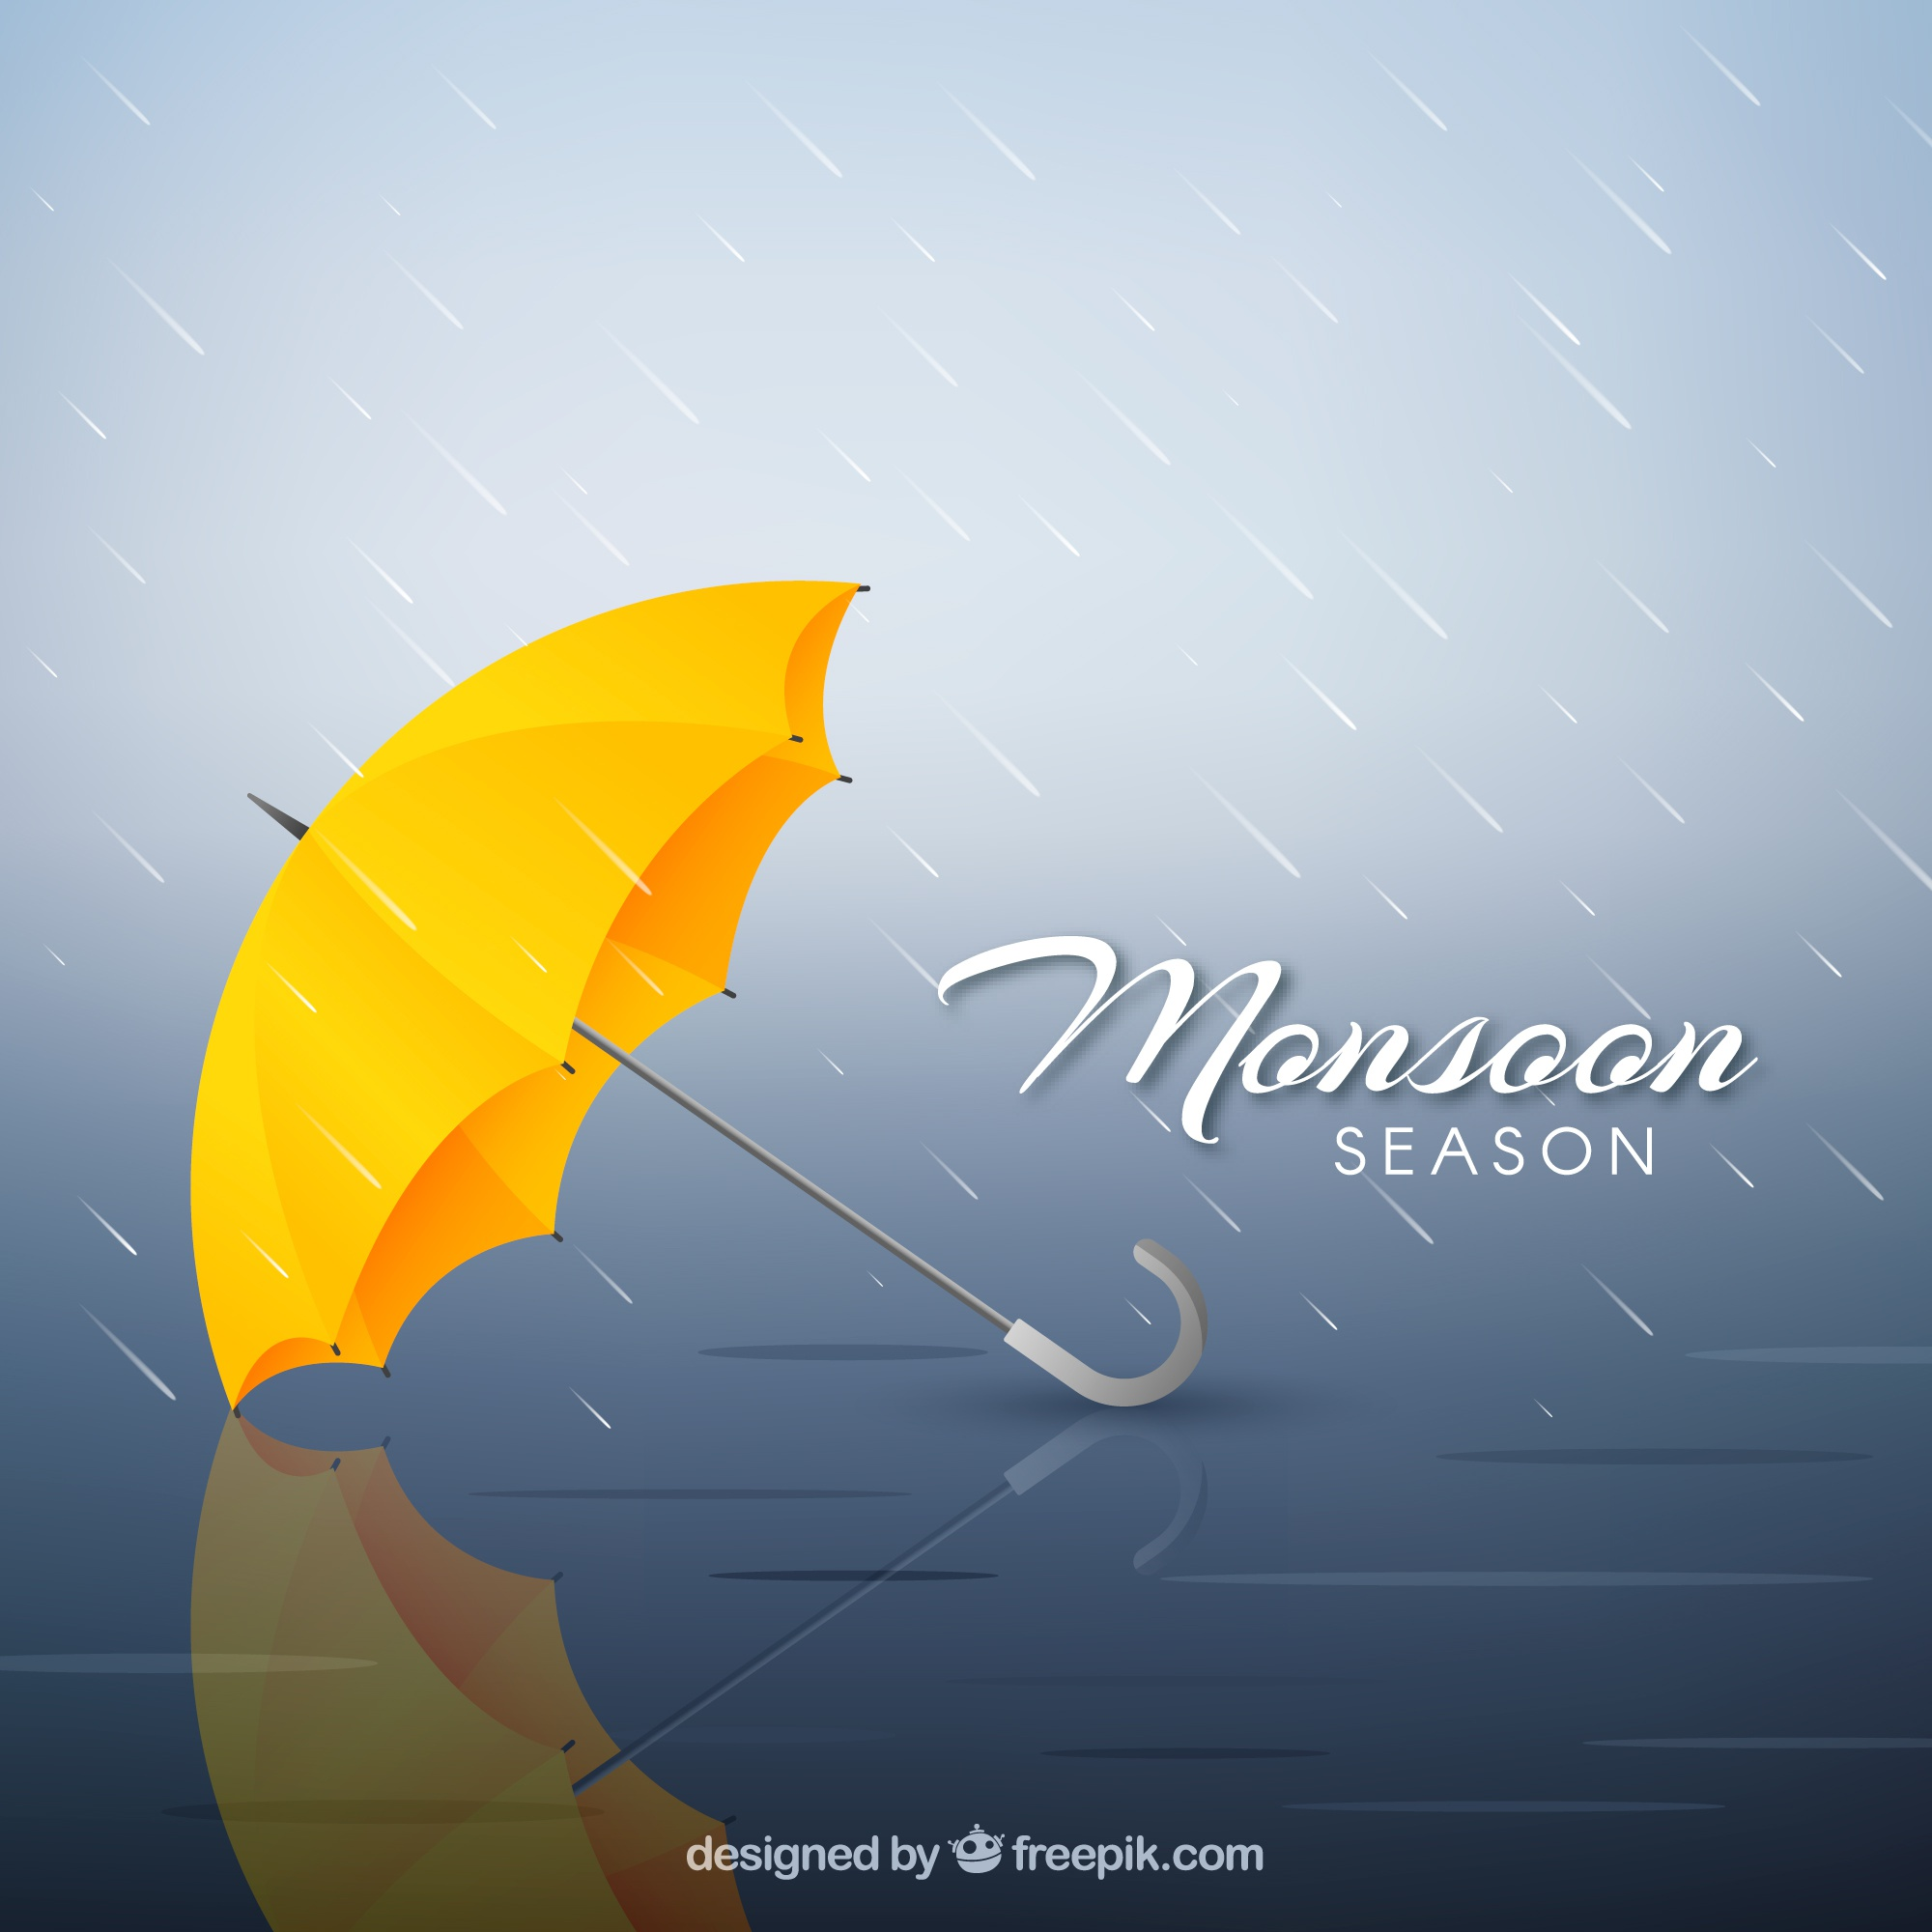 Monsoon season composition with realistic design